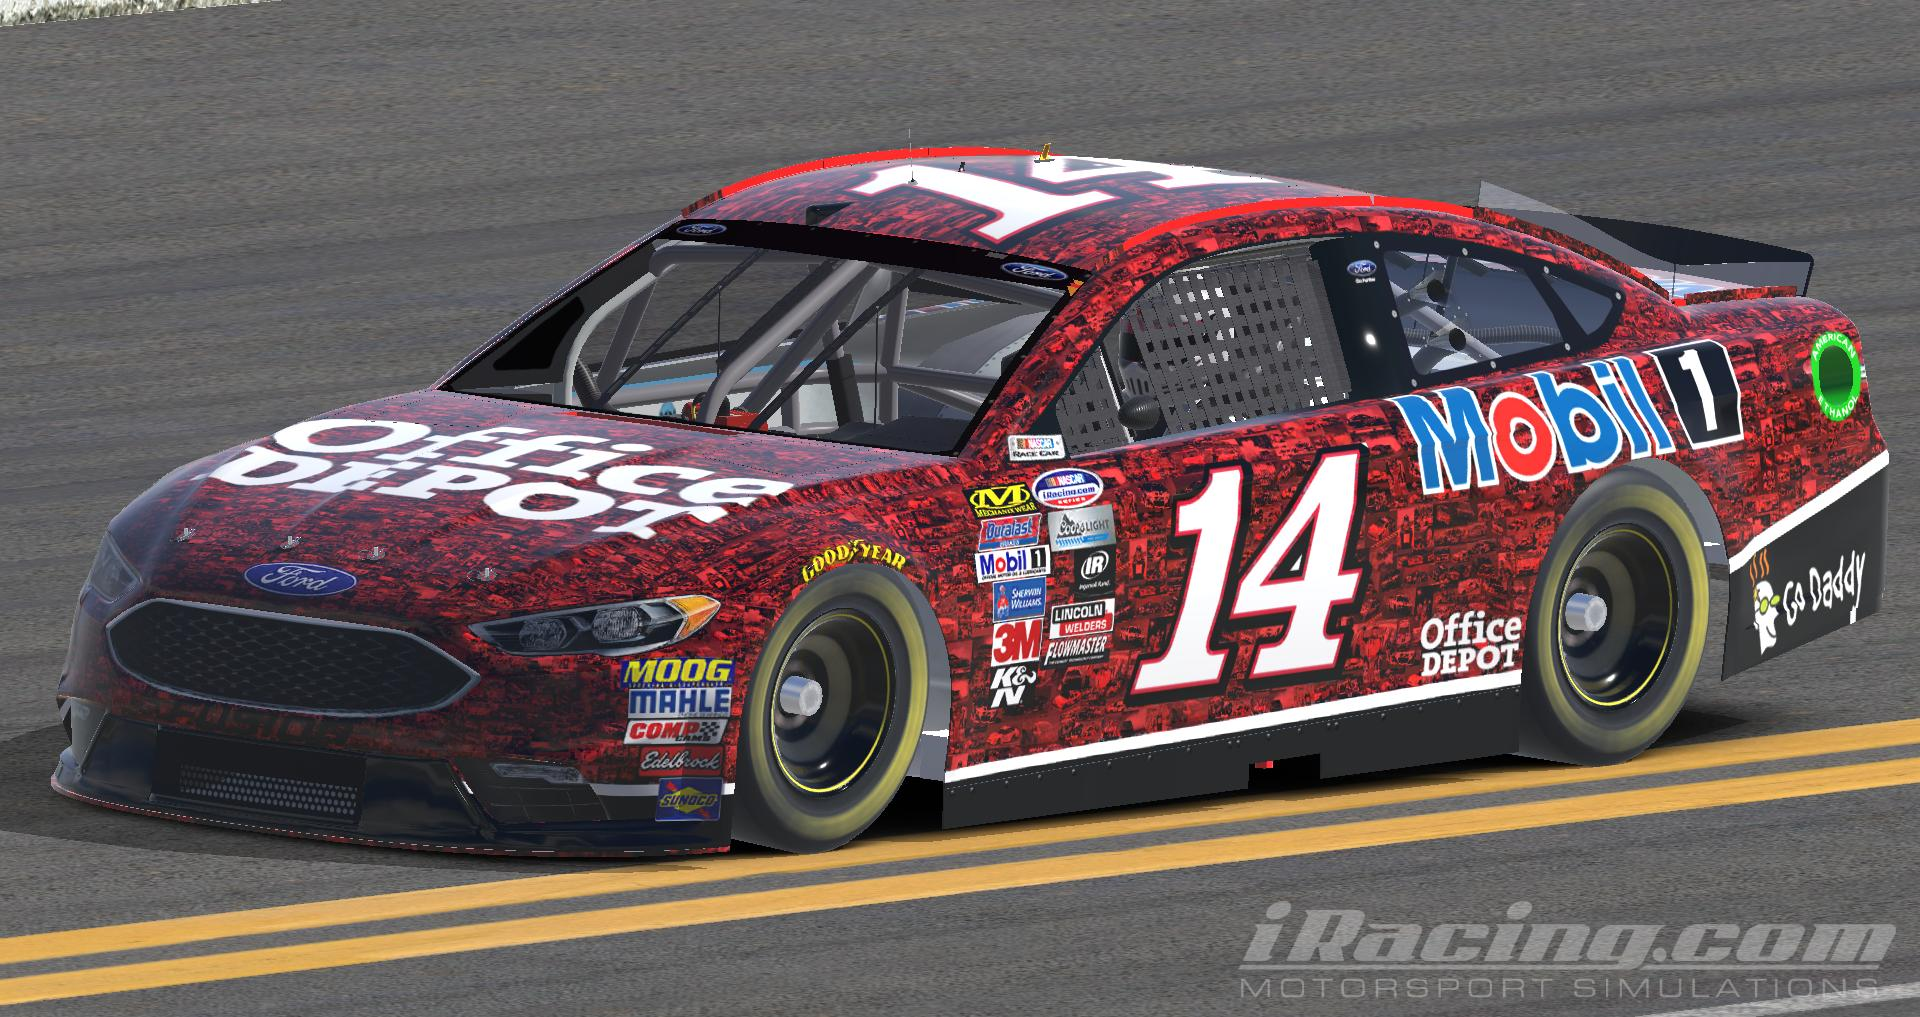 2006 Ford Fusion For Sale >> Tony Stewart Tribute Scheme Ford Fusion (Fictional) by Anthony Burroughs - Trading Paints